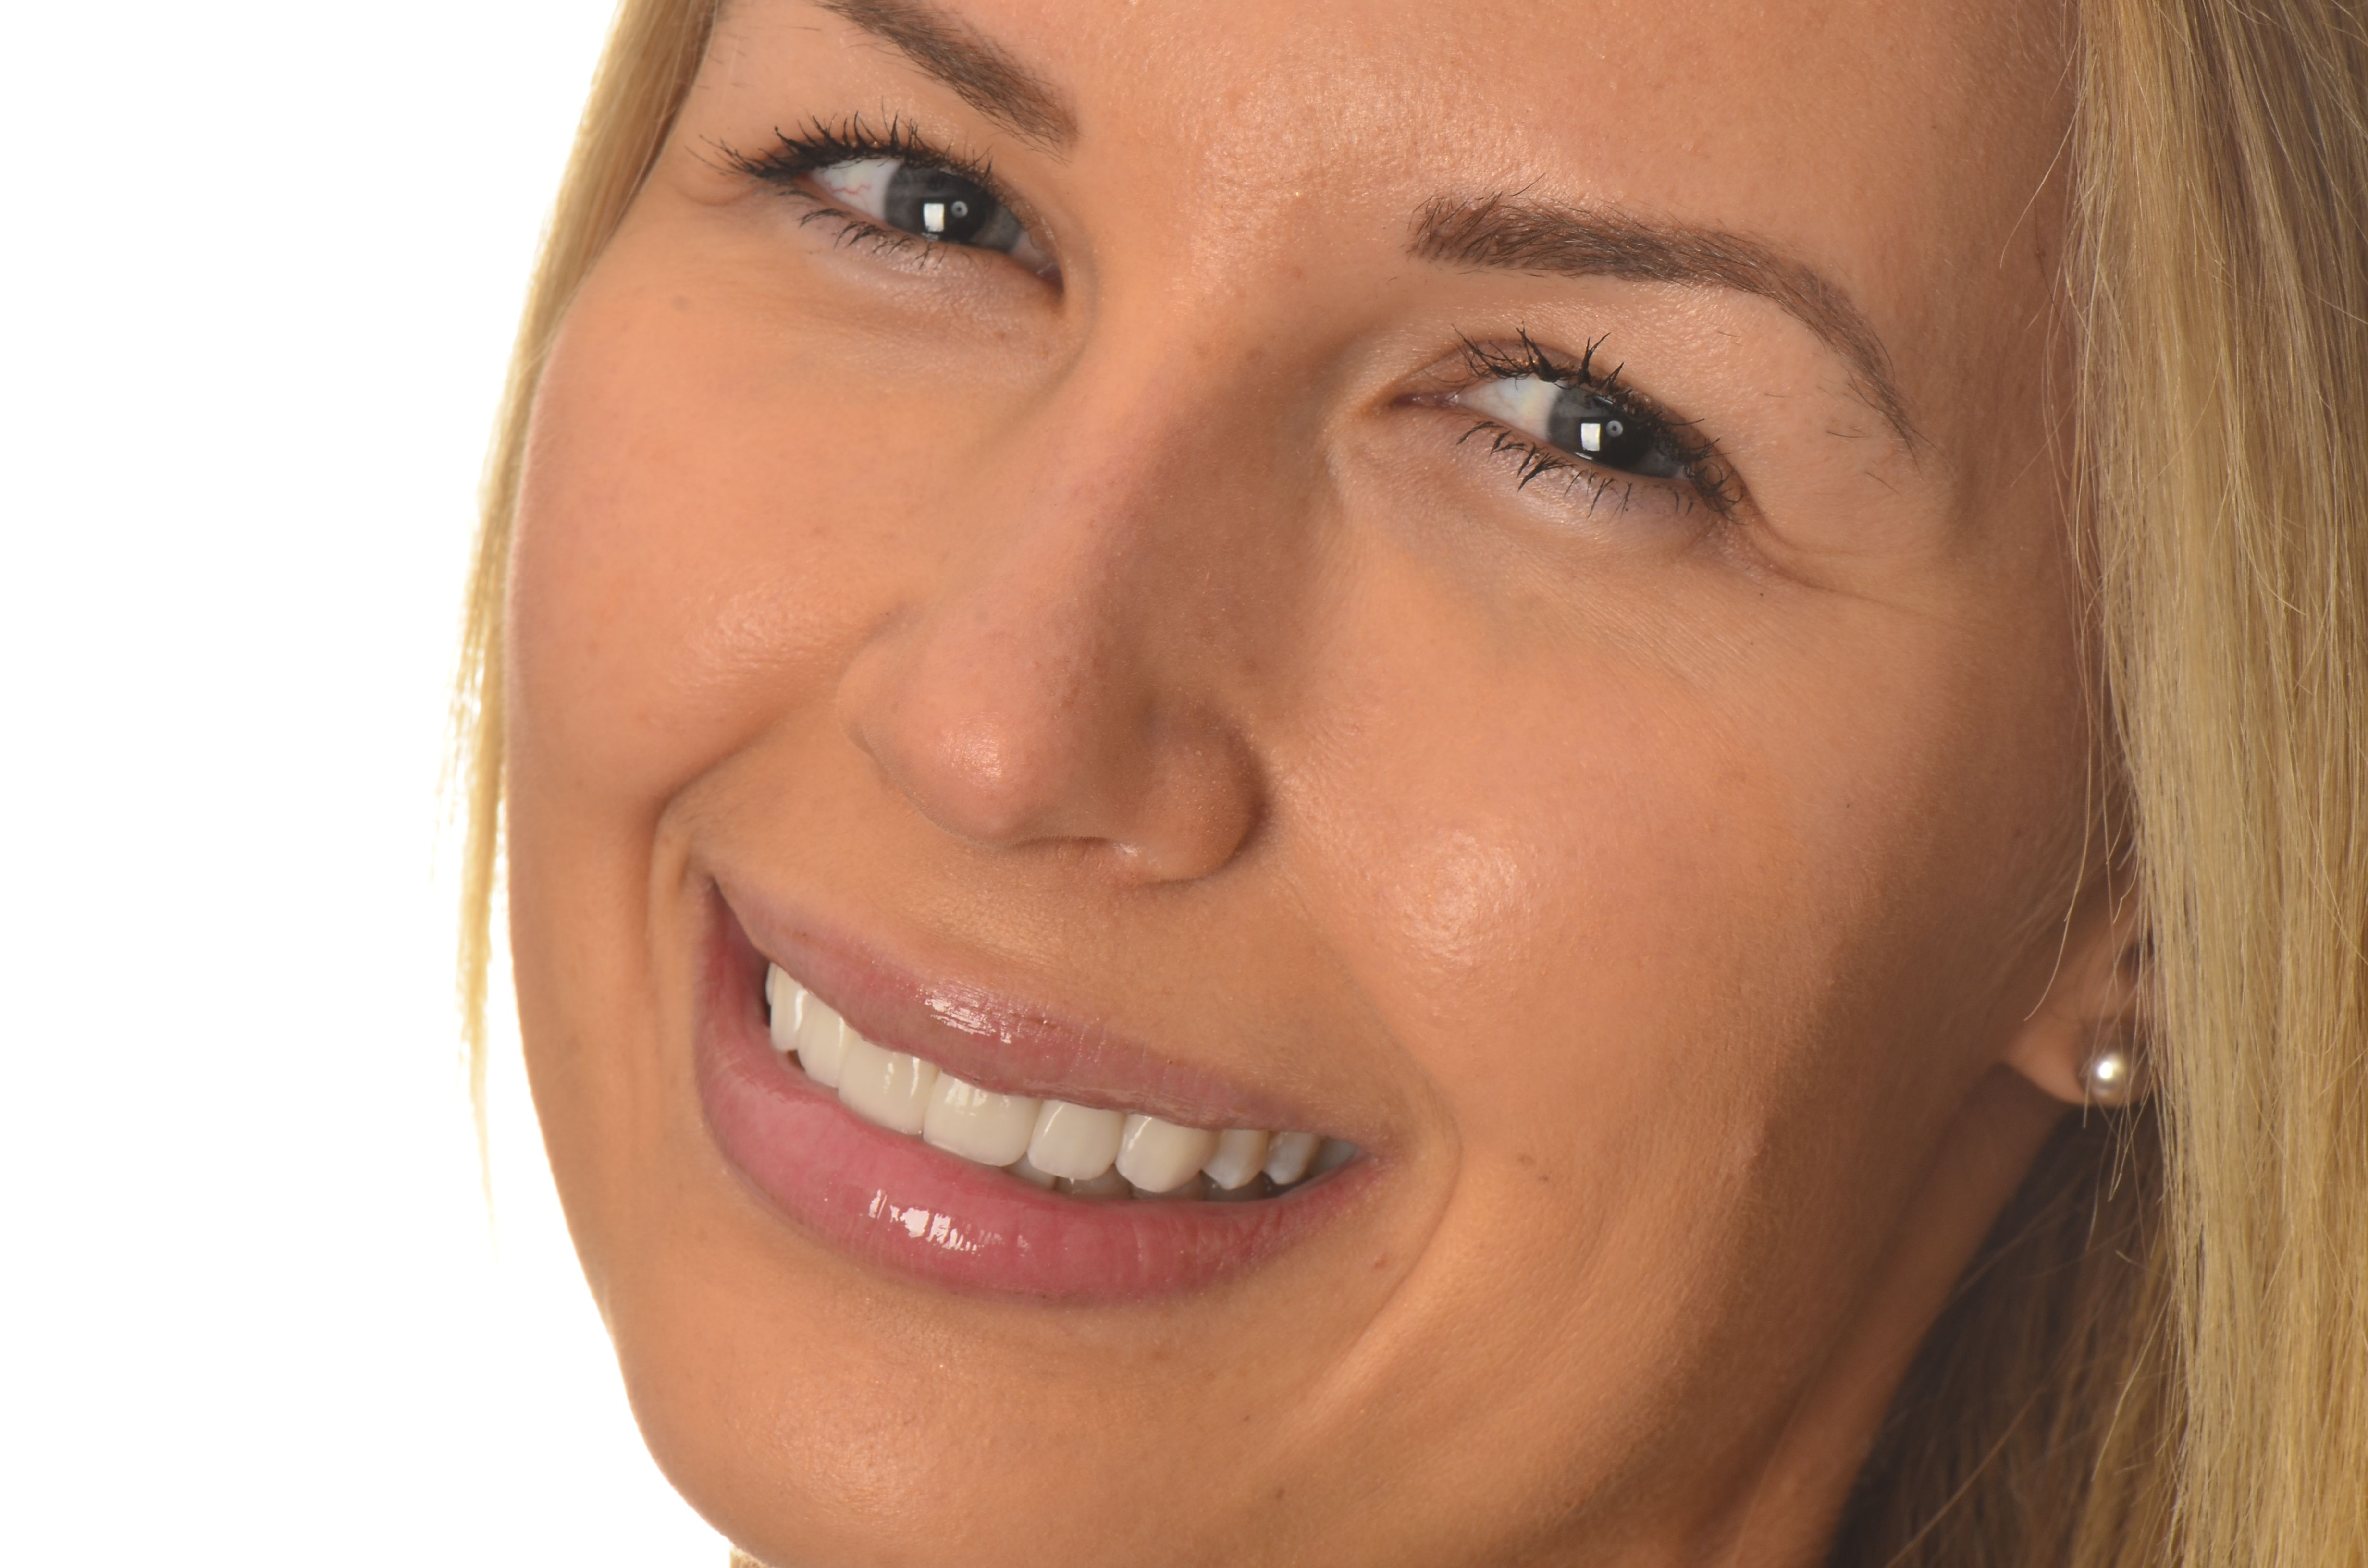 Is YOUR British Smile worth smiling about? Perfect Smile